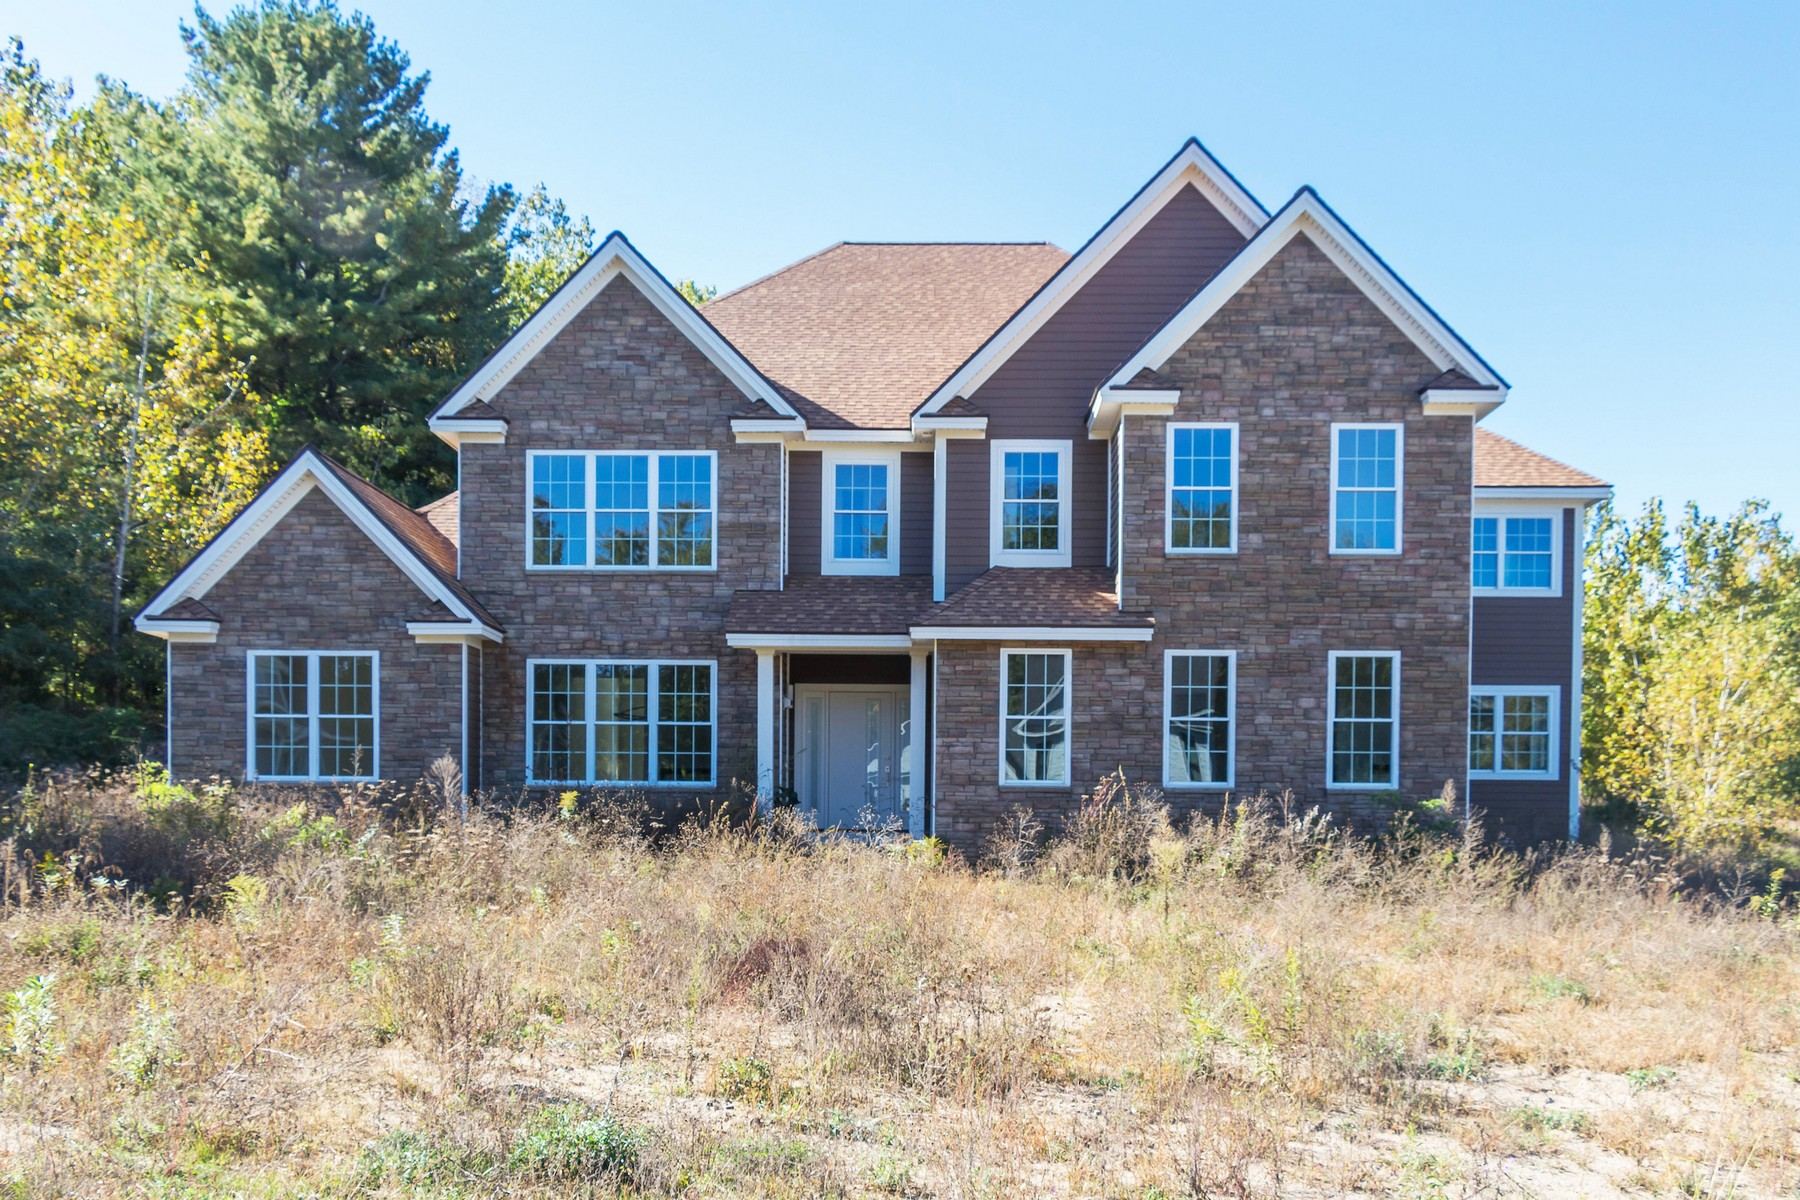 独户住宅 为 销售 在 New Construction Without the Wait 909 Sussex Ct Guilderland, 12084 美国